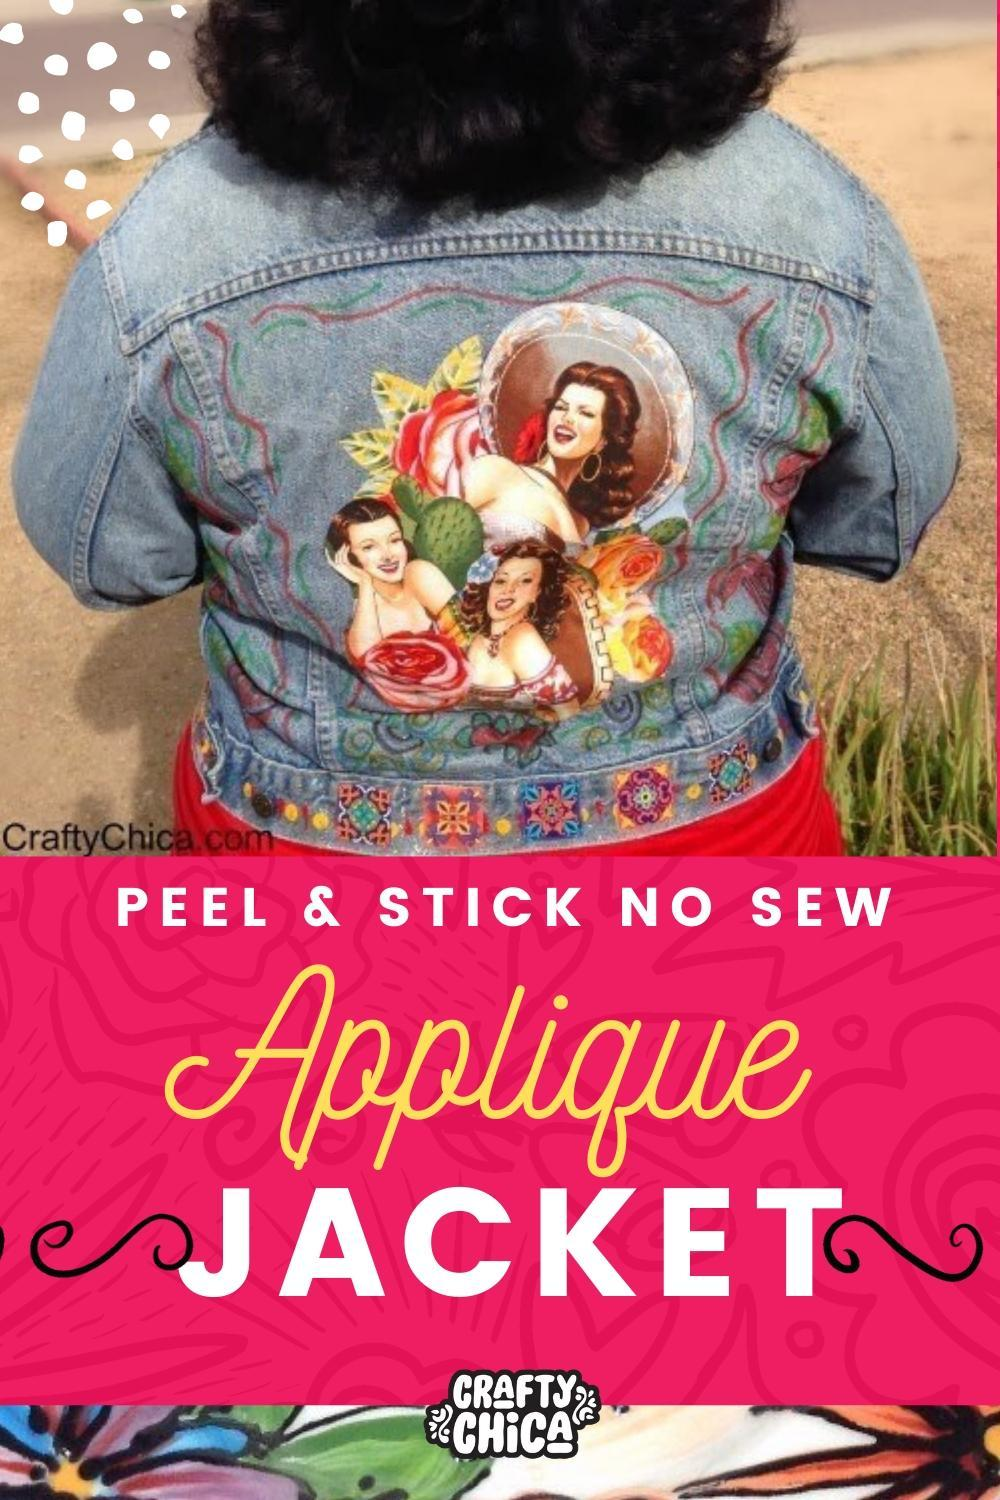 Fabric Applique Jacket #craftychica #jacketmakeover